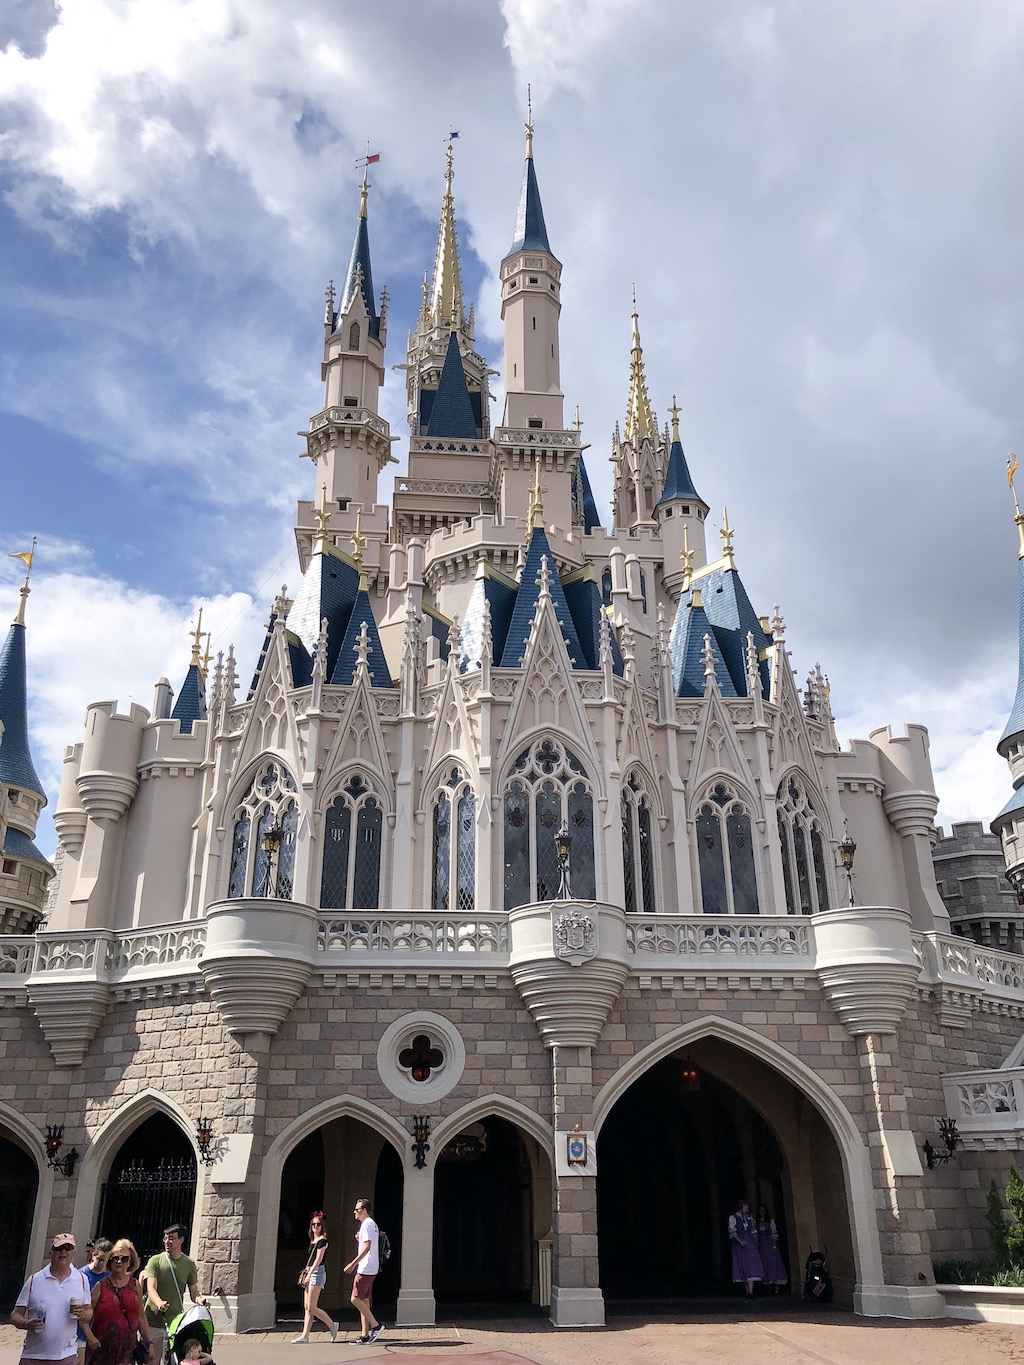 Summer is totally the best time to visit Disney World and here are 5 reasons why you should plan a summer Disney World vacation.